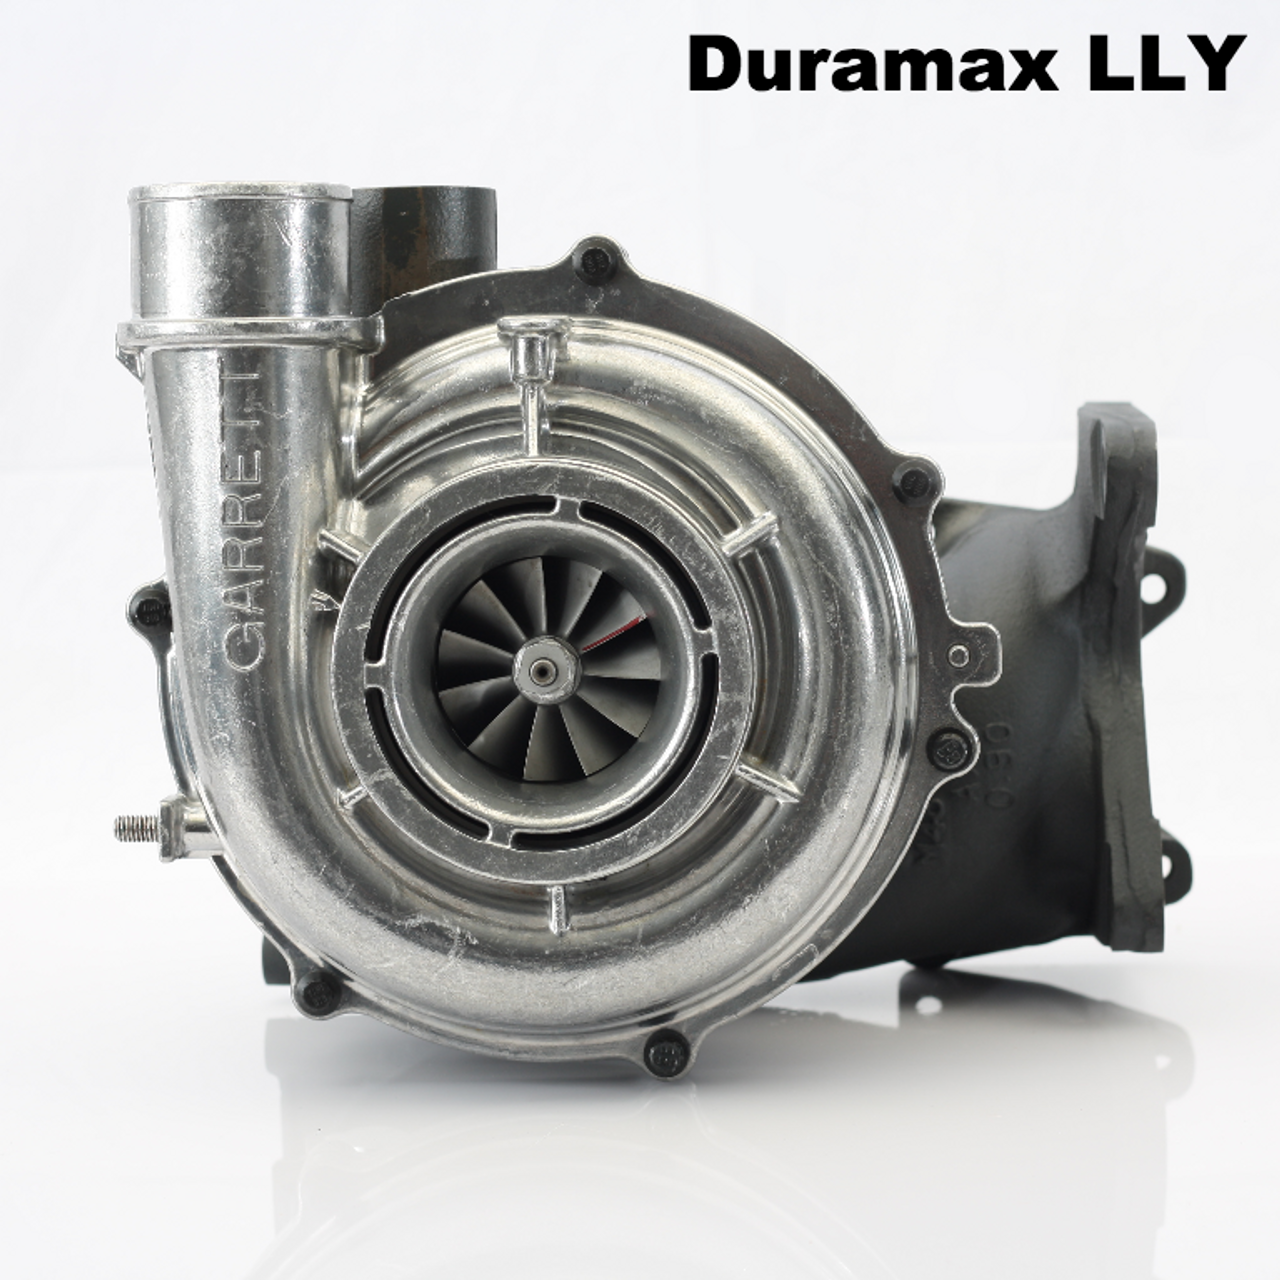 04.5-05 Duramax 6.6 LLY Replacement Turbocharger